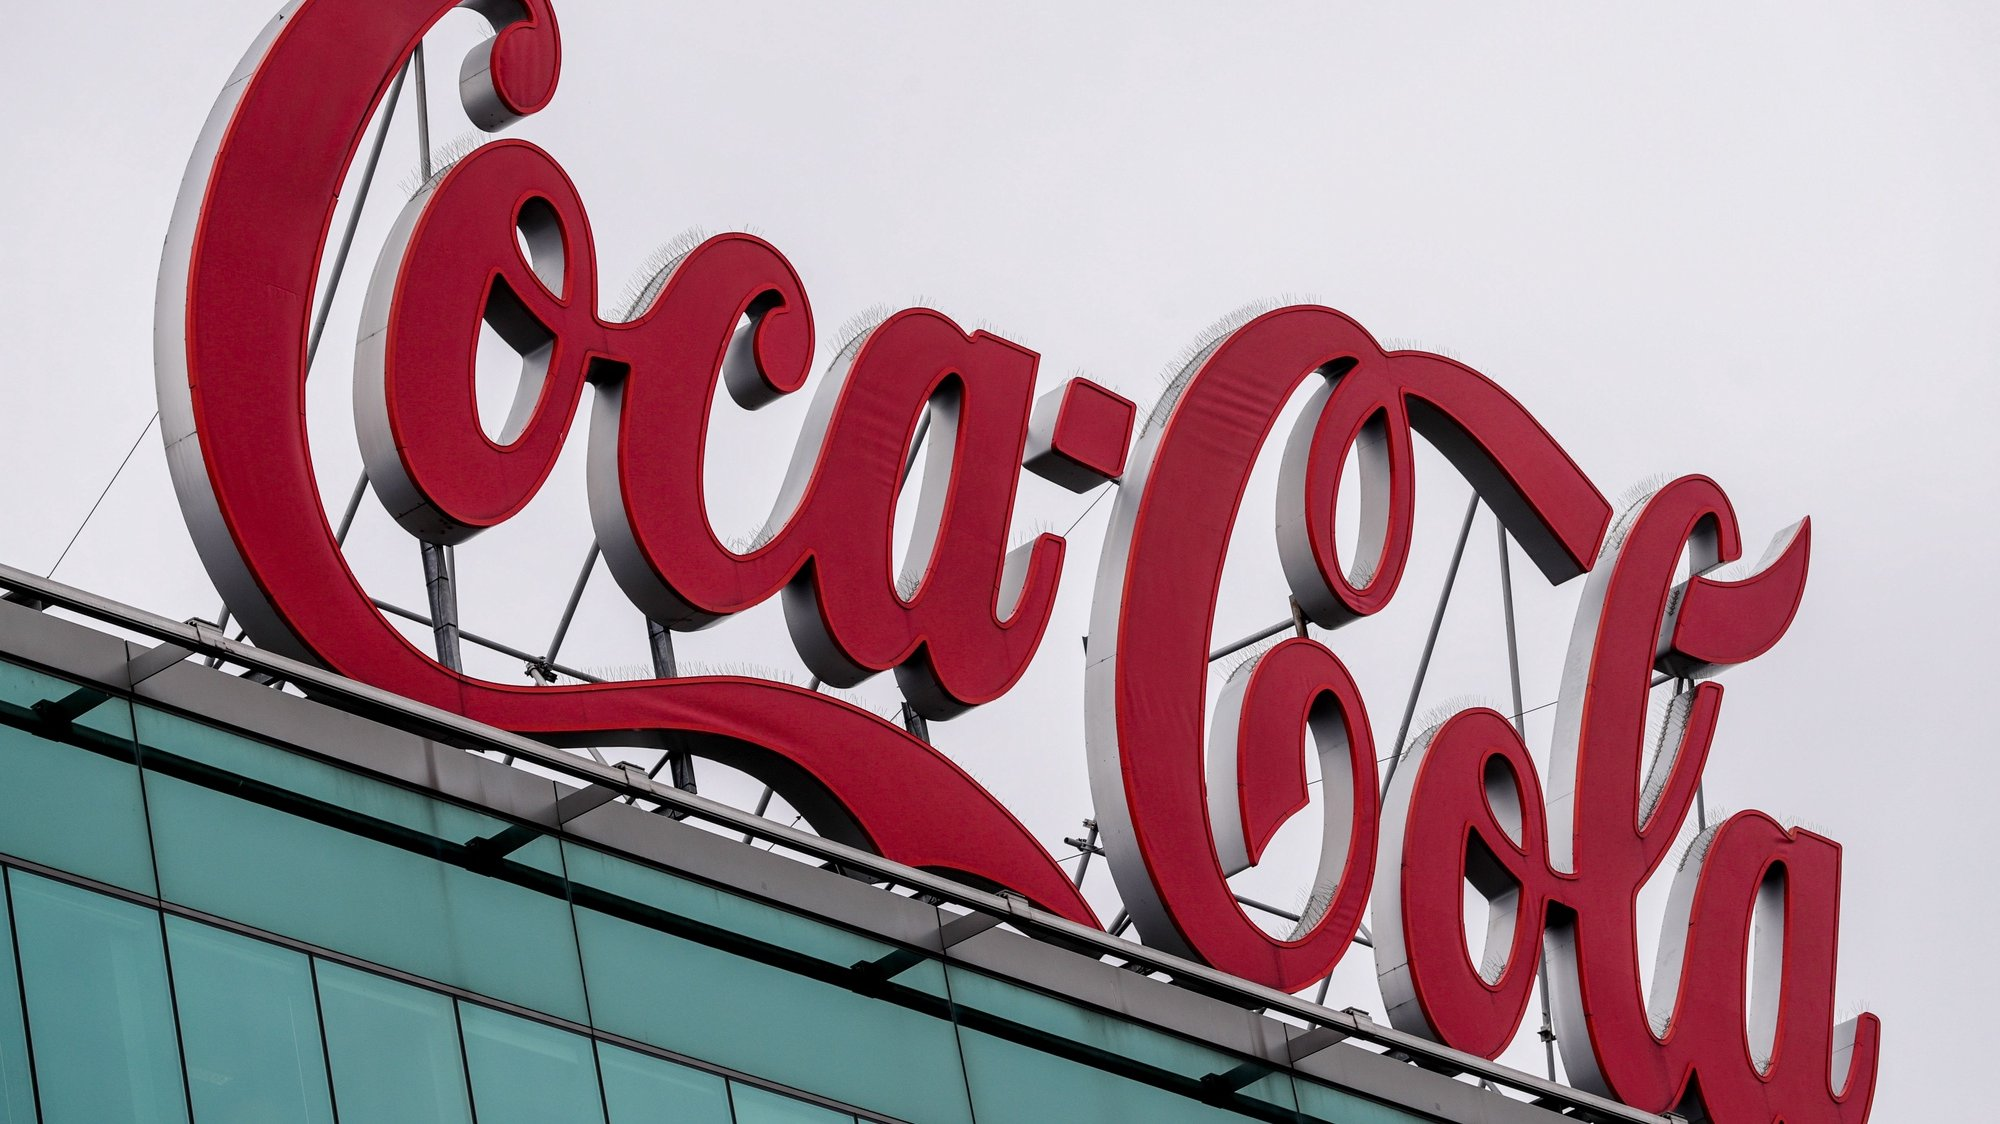 epa08998895 (FILE) - A view of a Coca-Cola logo at the headquarter of Coca-Cola Belgium in Brussels, Belgium, 08 September 2020 (reissued 09 February 2021). The Coca-Cola company is due to pulish their 4th quarter 2020 results on 10 February 2021.  EPA/STEPHANIE LECOCQ *** Local Caption *** 56327284